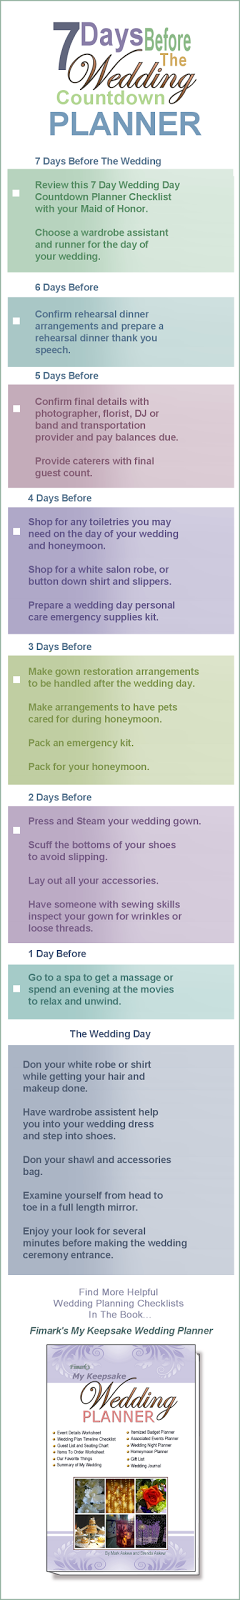 7 Days Before The Wedding Countdown Planner